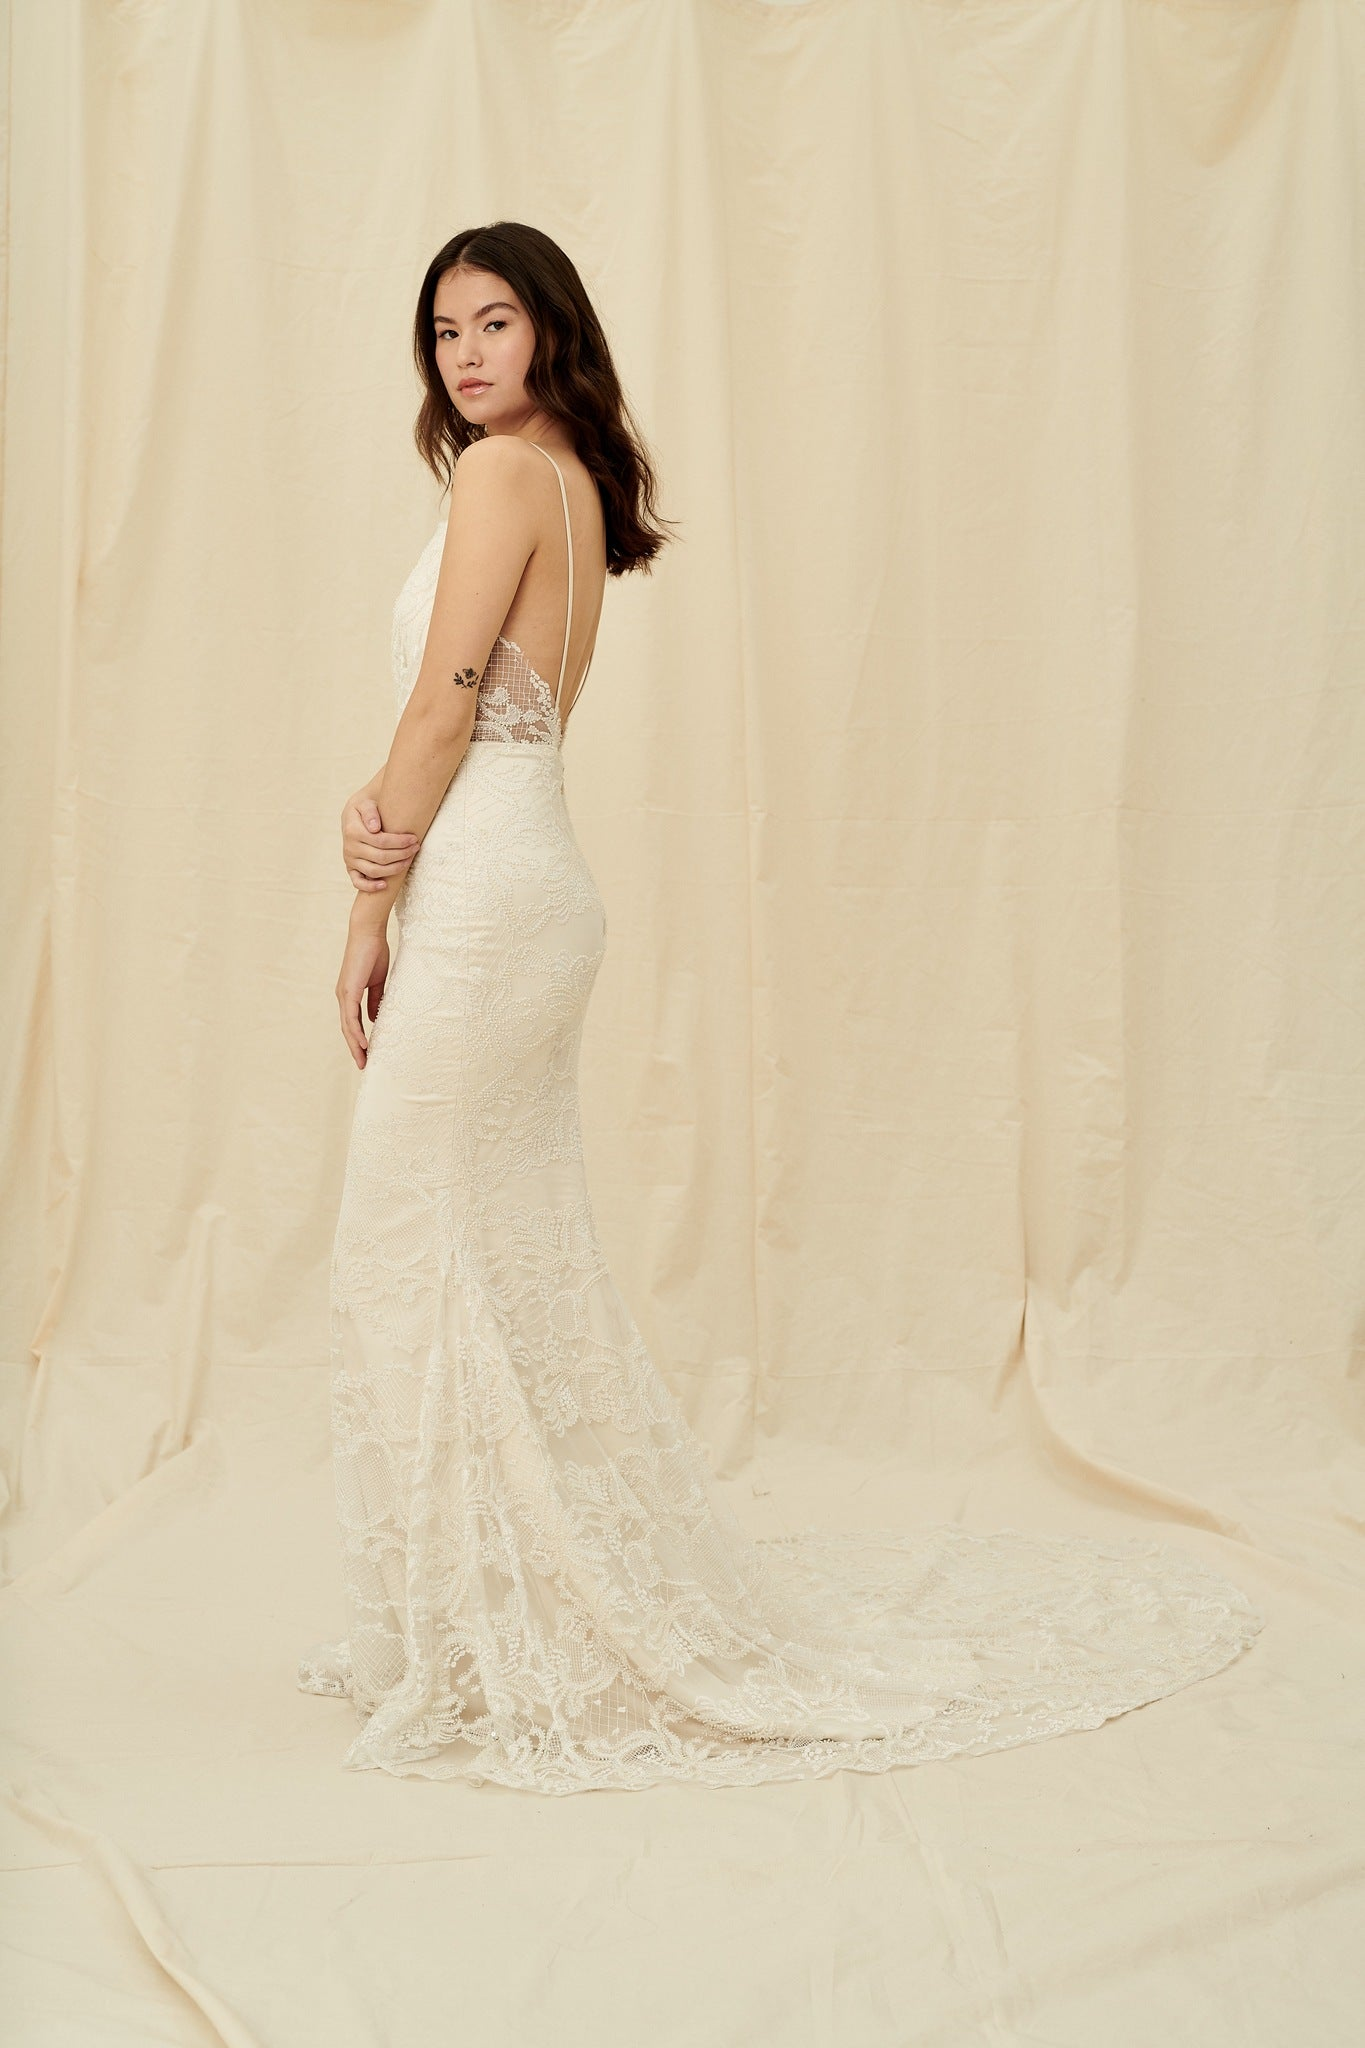 Fitted mermaid gown with a vintage-style beaded overlay and a long train